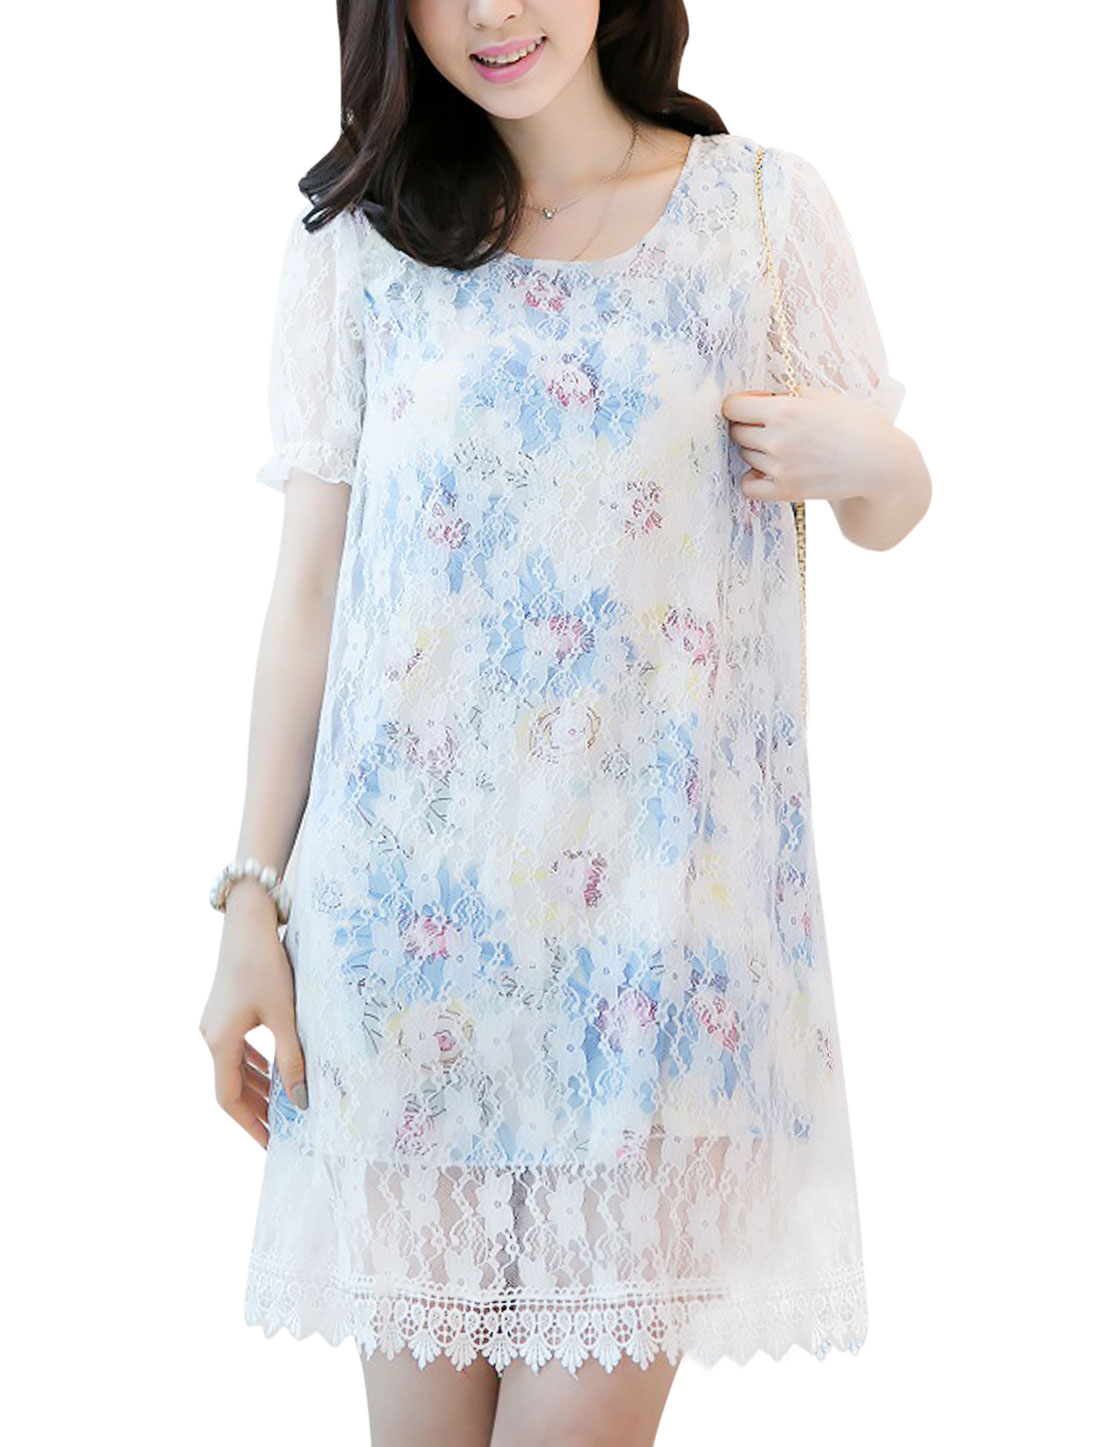 Lady Short Sleeve Floral Prints Lace Overlay Dress Sky Blue M